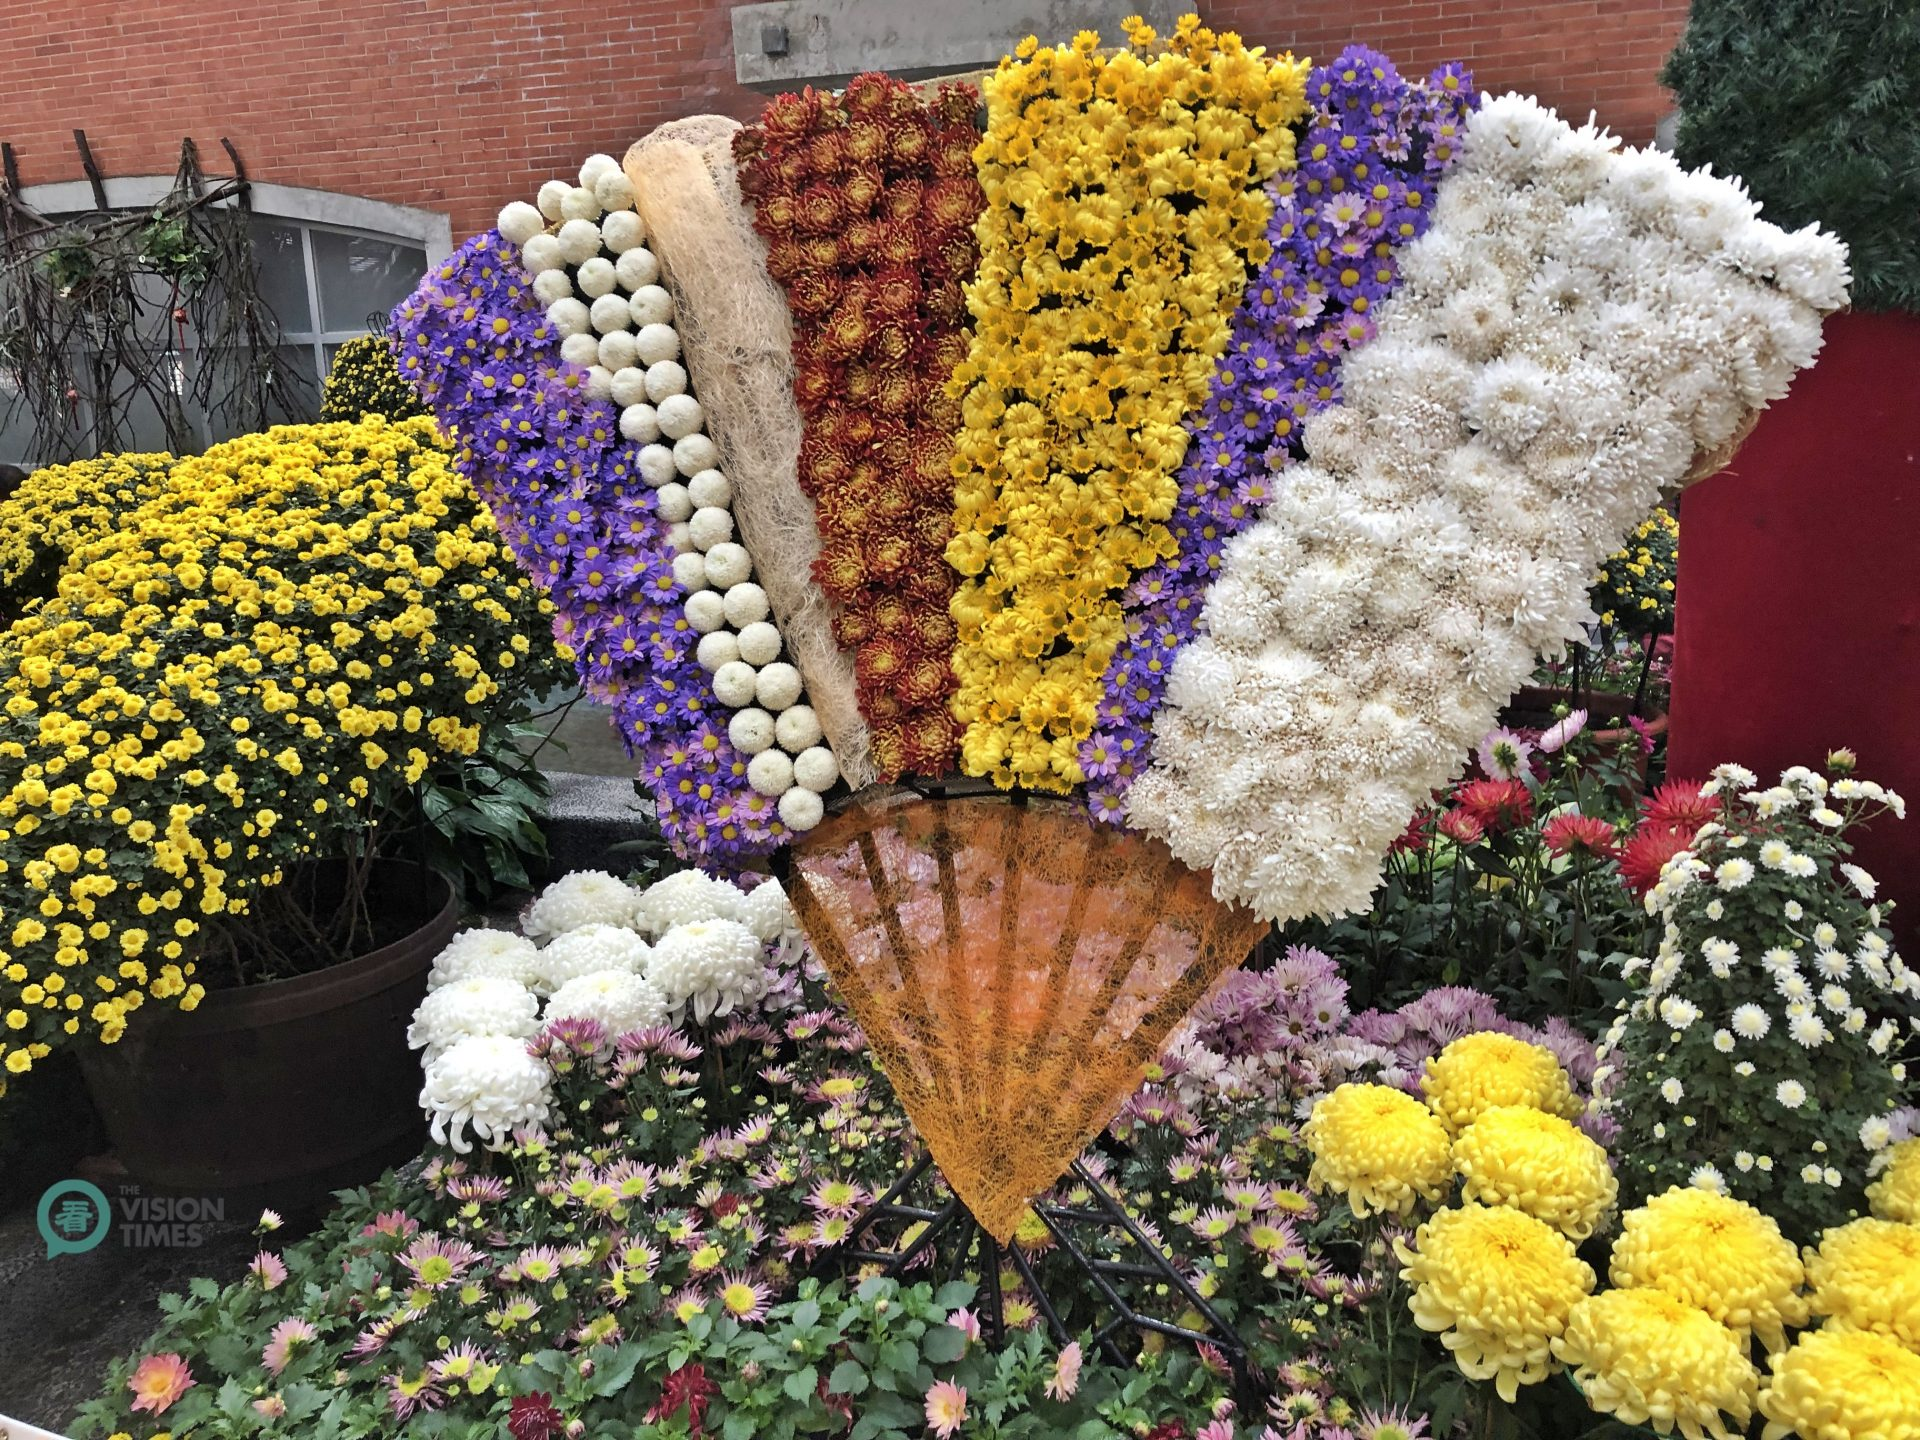 The colorful Chrysanthemum Show is popular among people in Taiwan. (Image: Julia Fu / Vision Times)